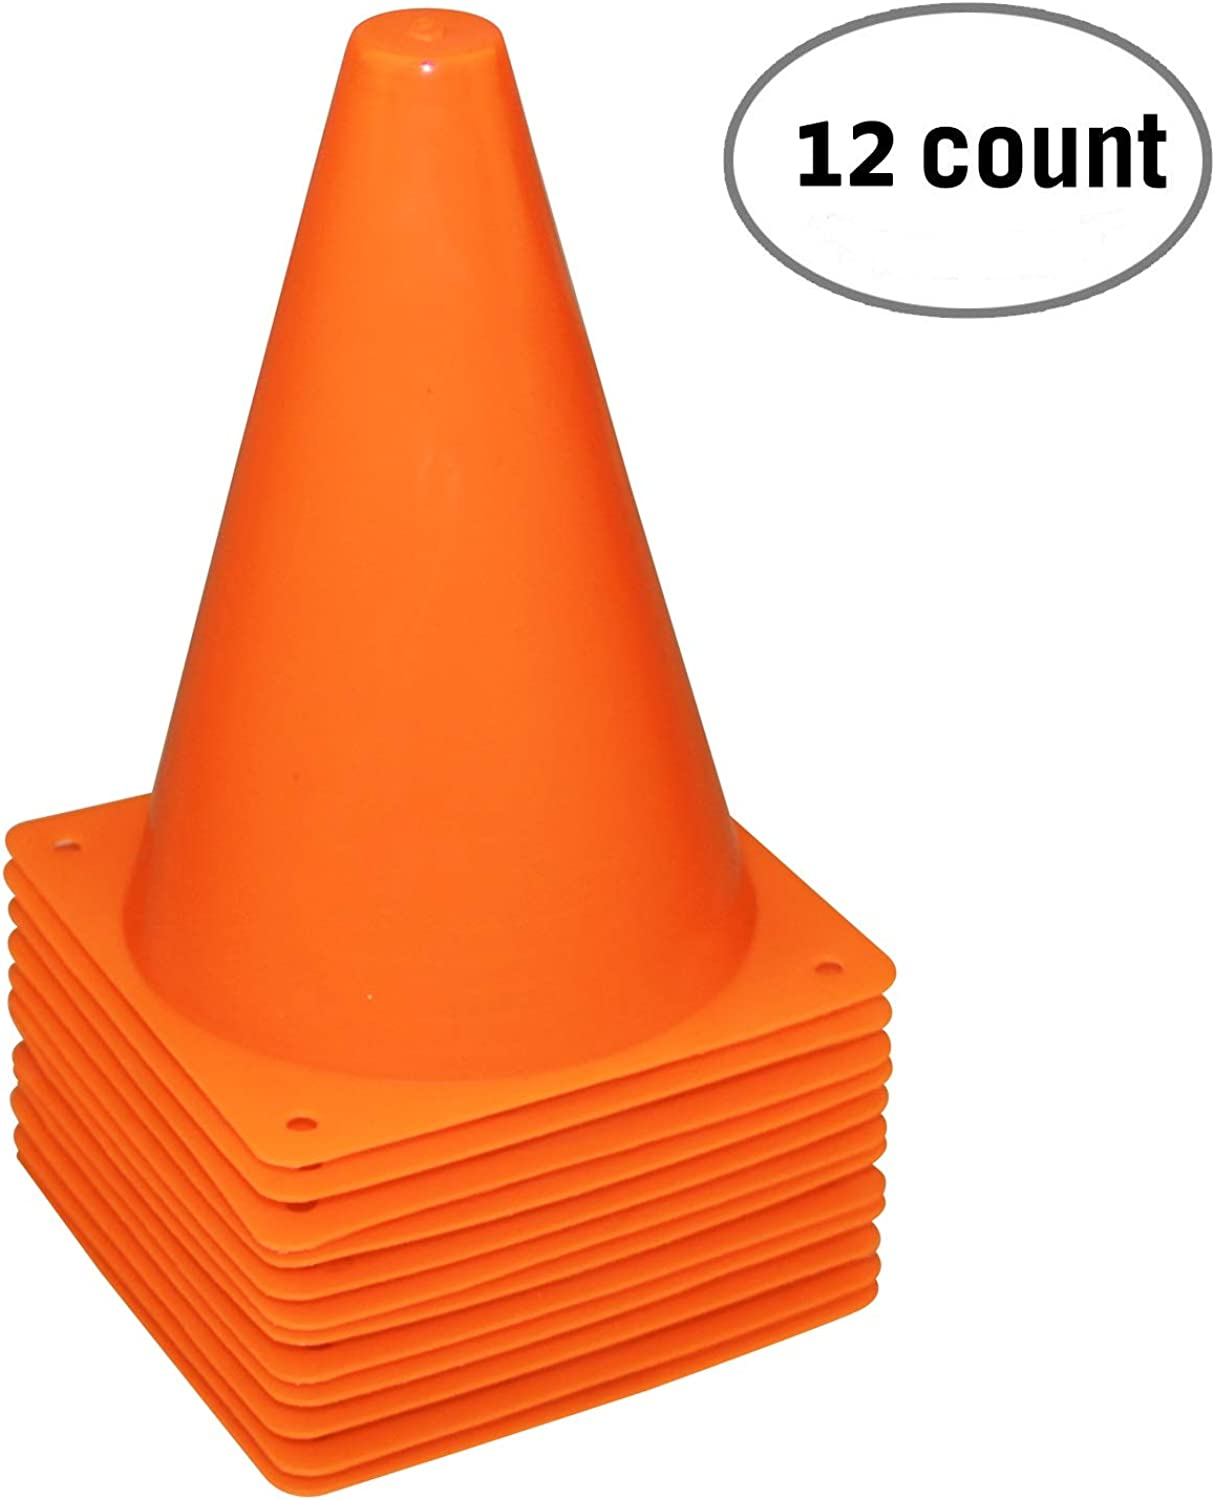 7.5-Inch Training Traffic Cones   Mini Agility Marker Cone for Kids   Safety Plastic Cones for Soccer Football Sport - (Set of 12 orange)